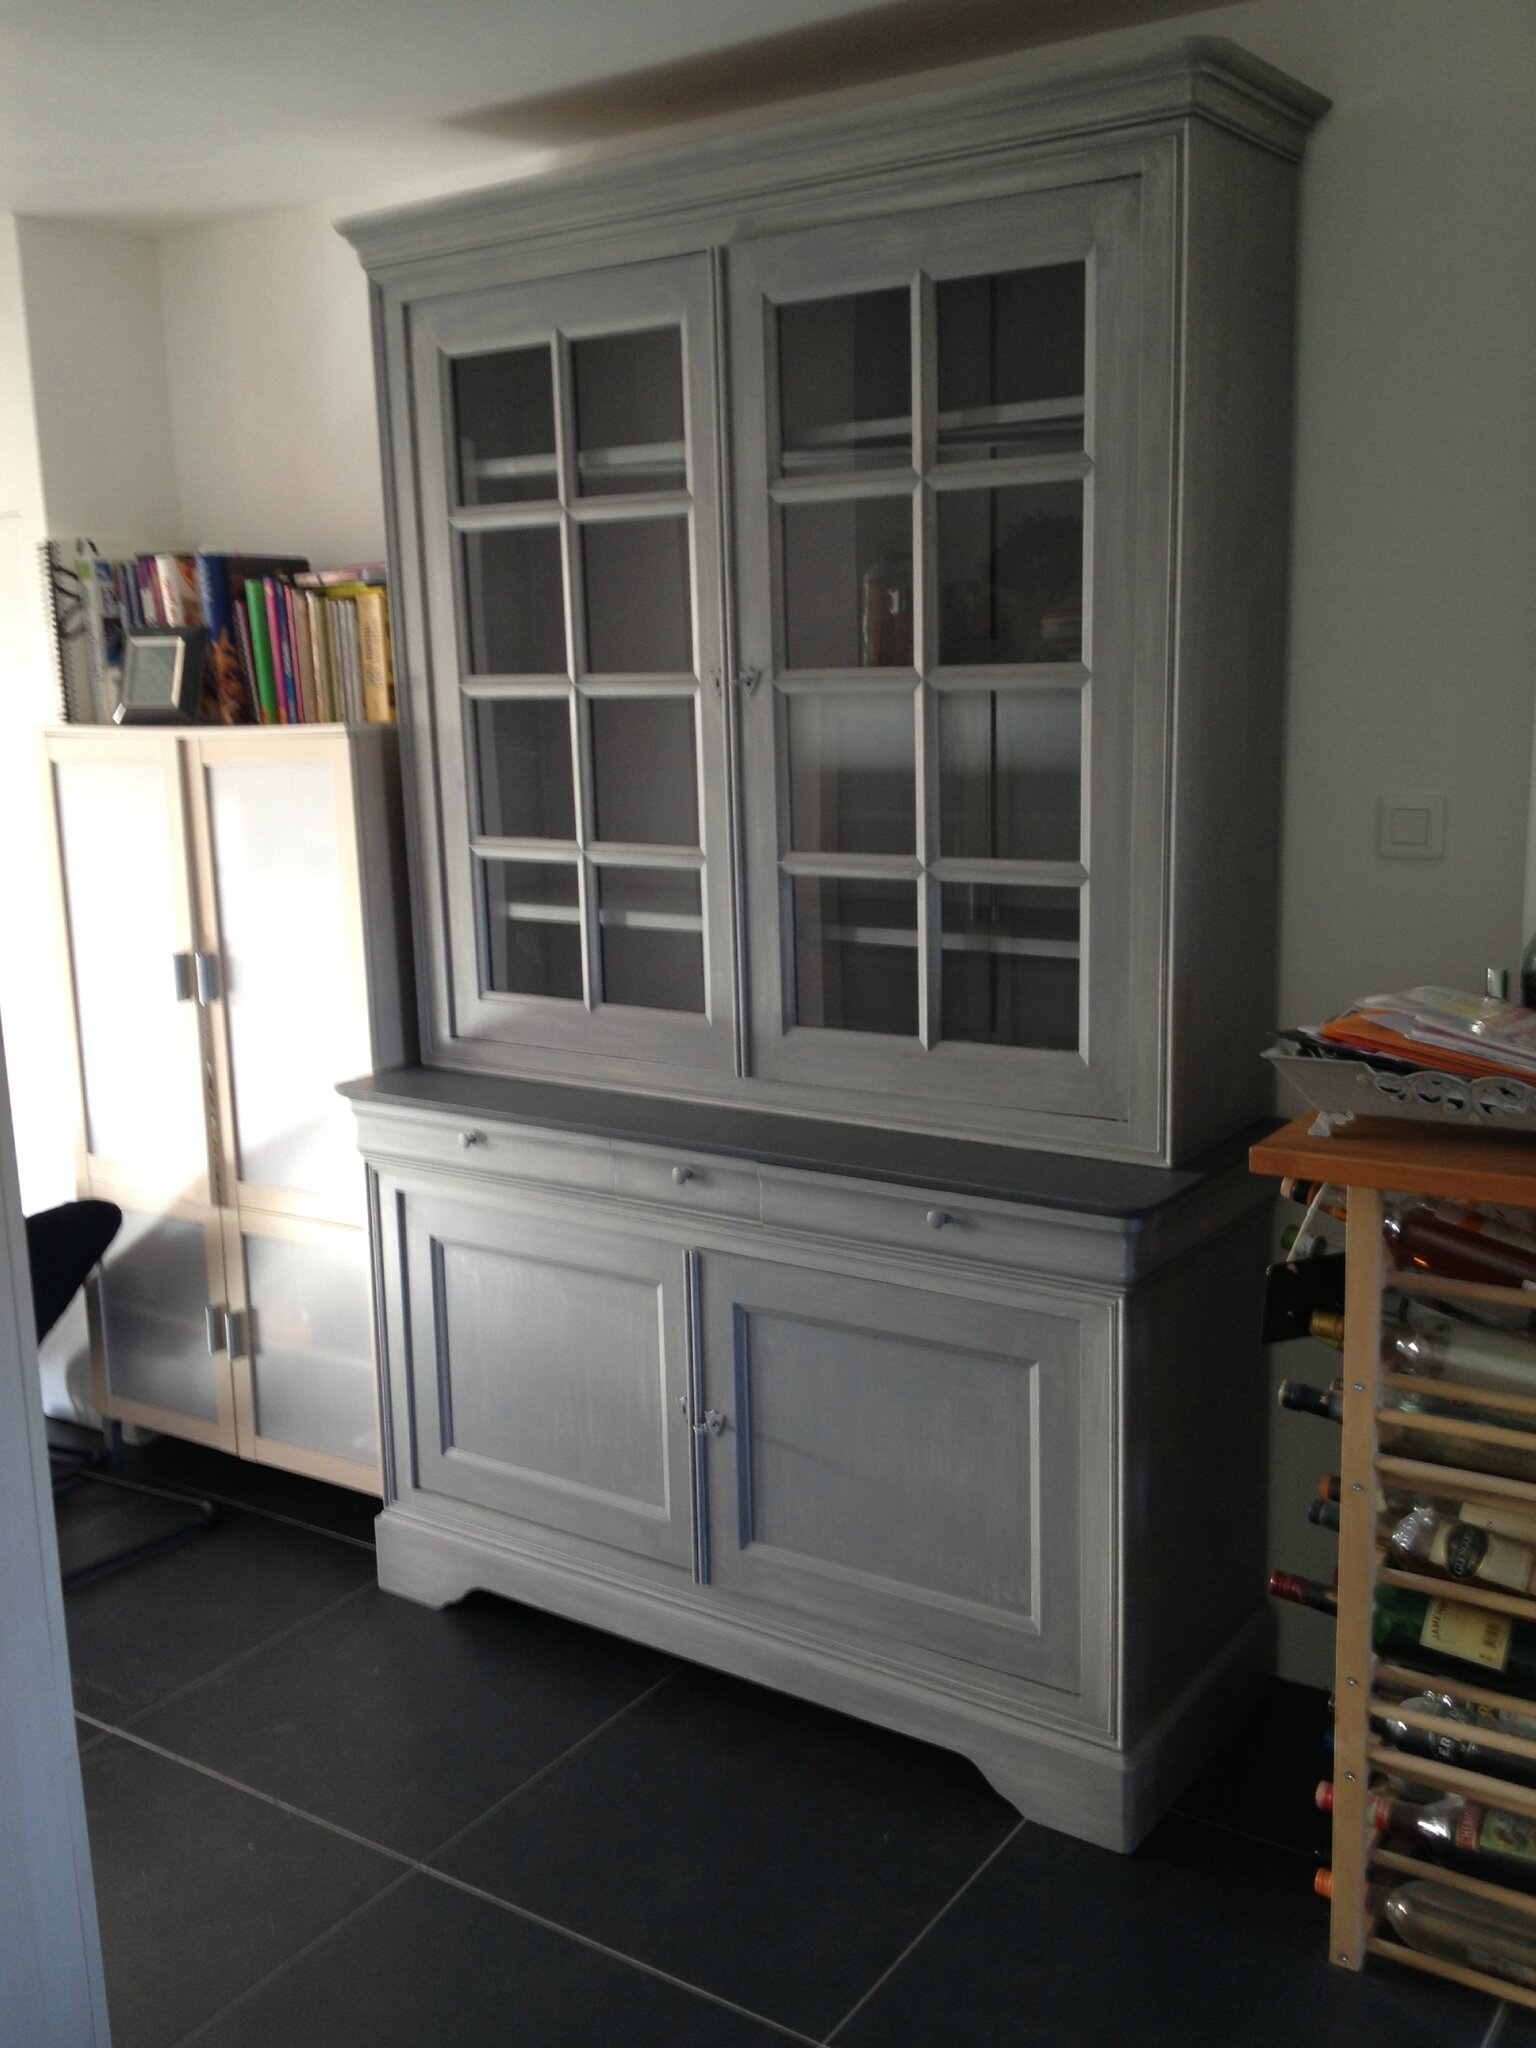 Meuble Rustique Repeint Good Meuble Gris With Meuble Repeint En Gris